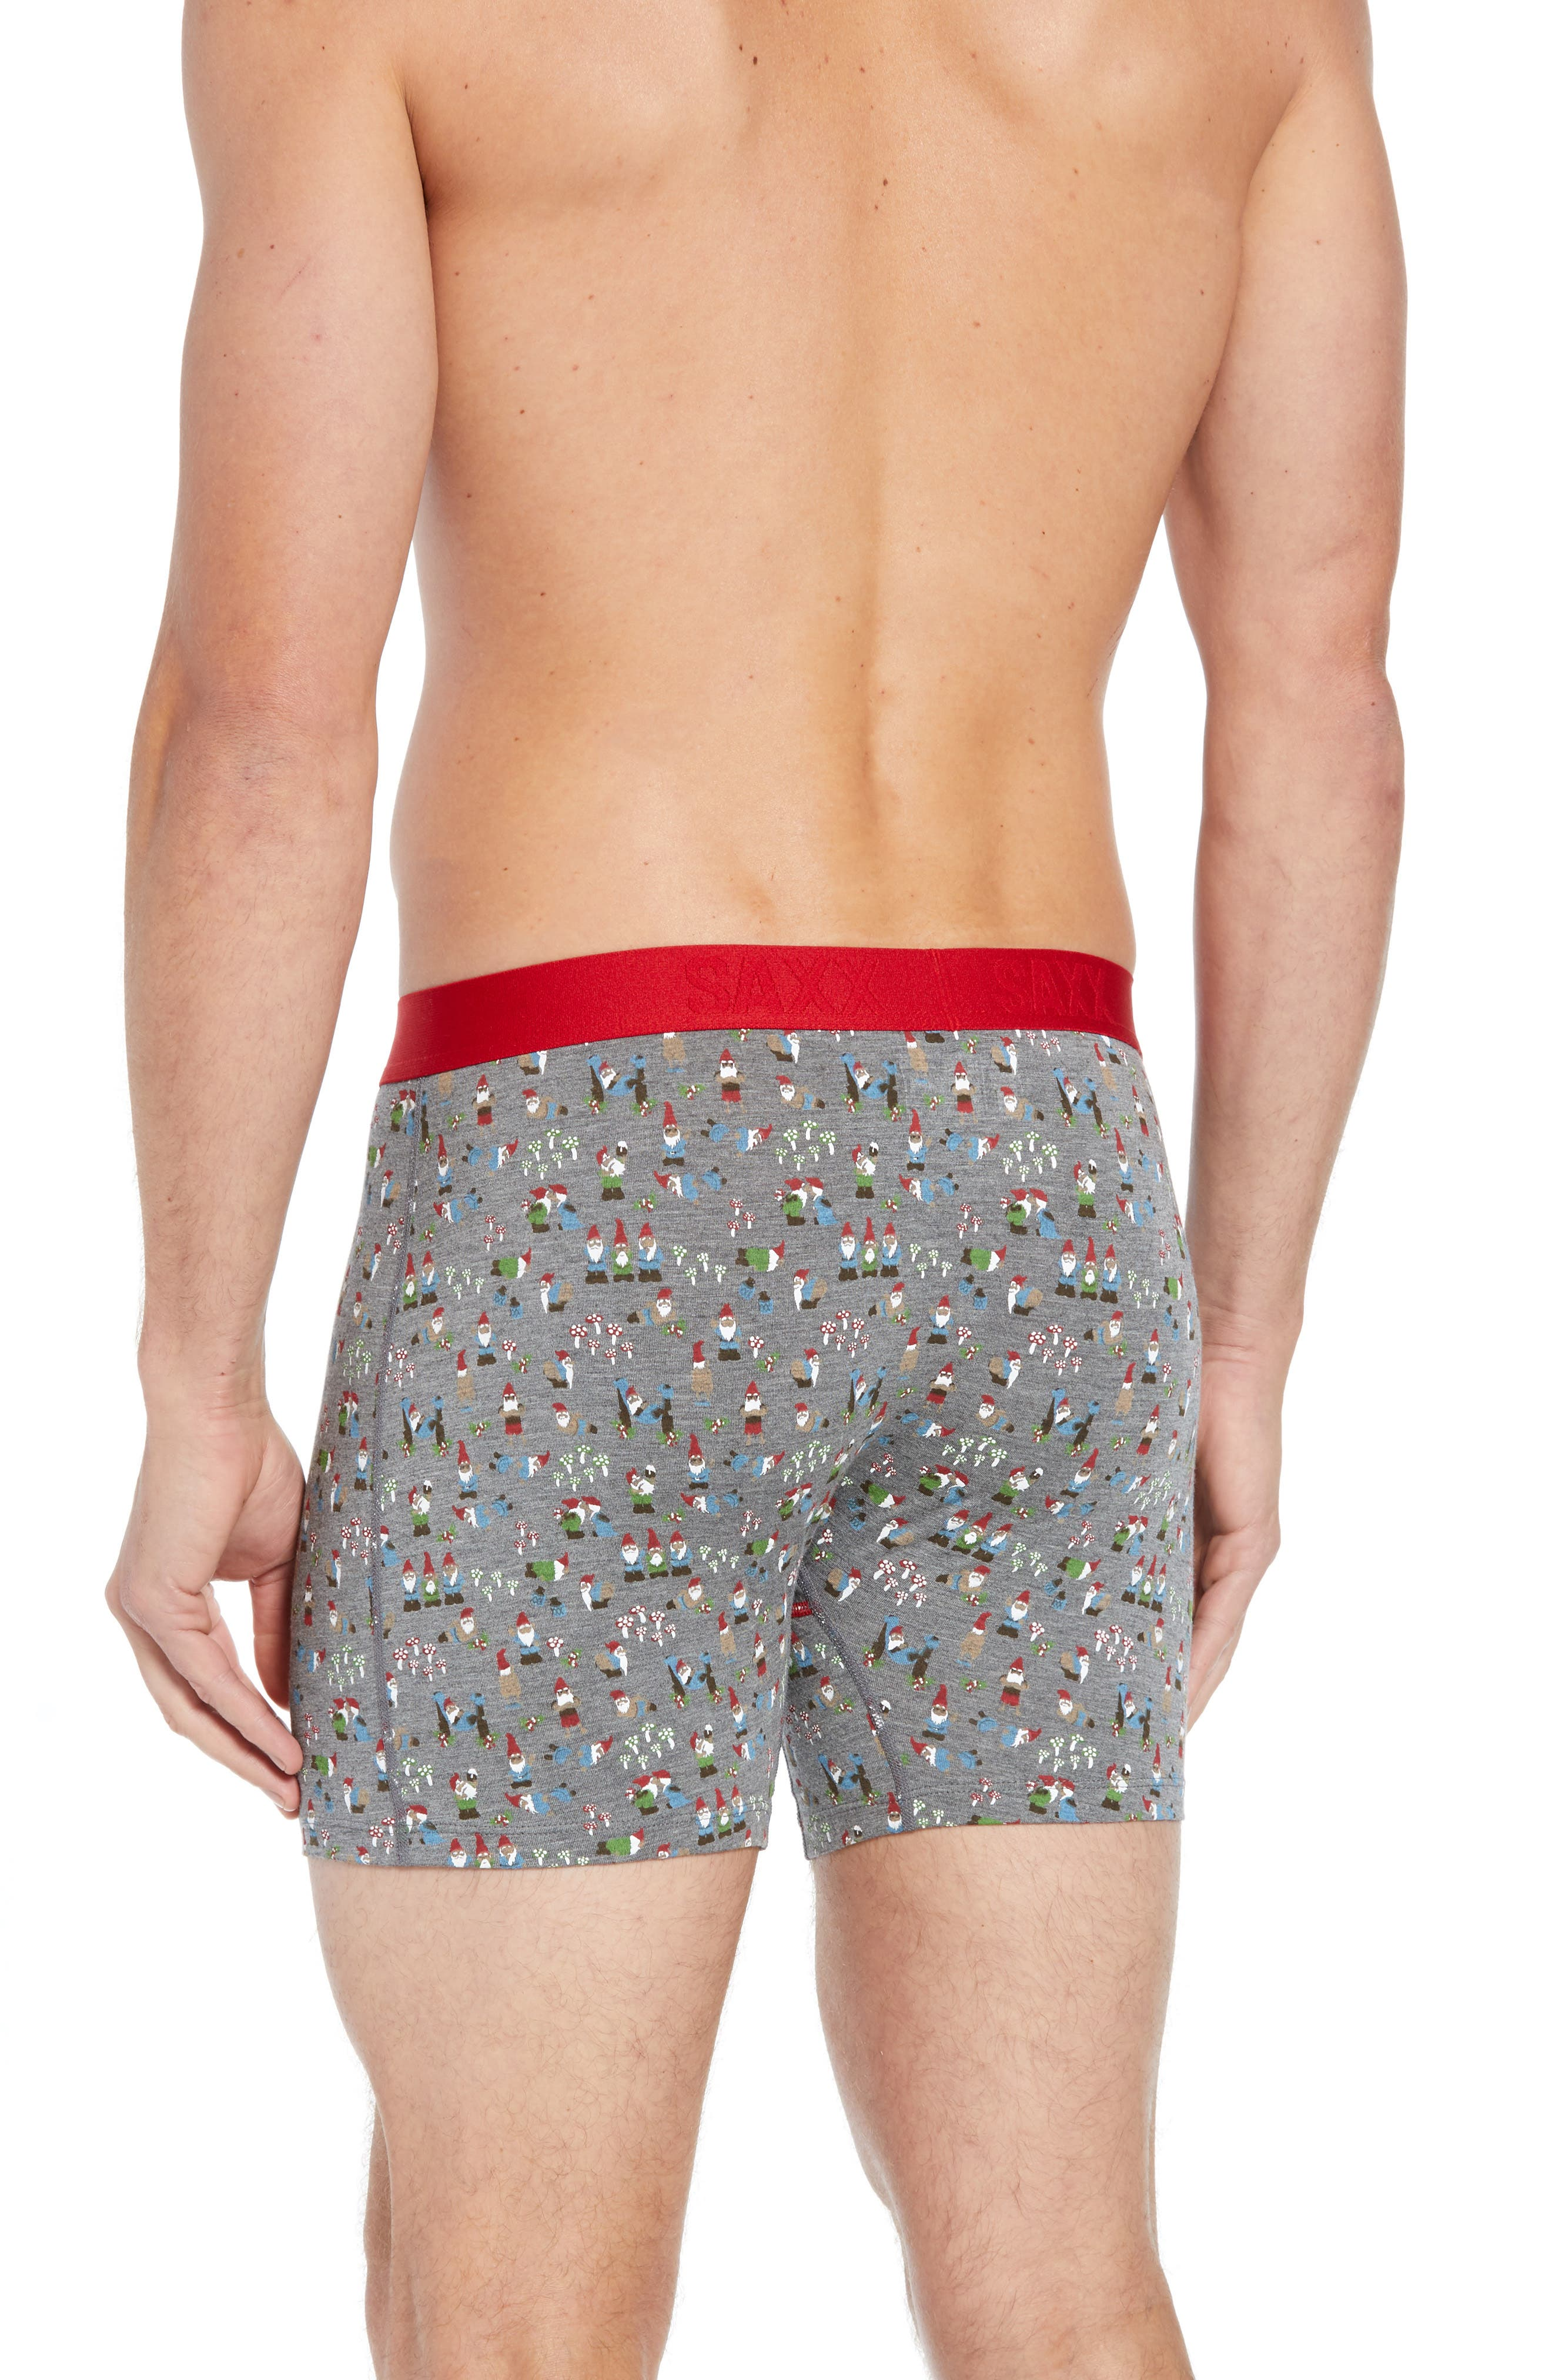 Ultra Naughty Gnomes Stretch Boxer Briefs,                             Alternate thumbnail 2, color,                             NAUGHTY GNOMES